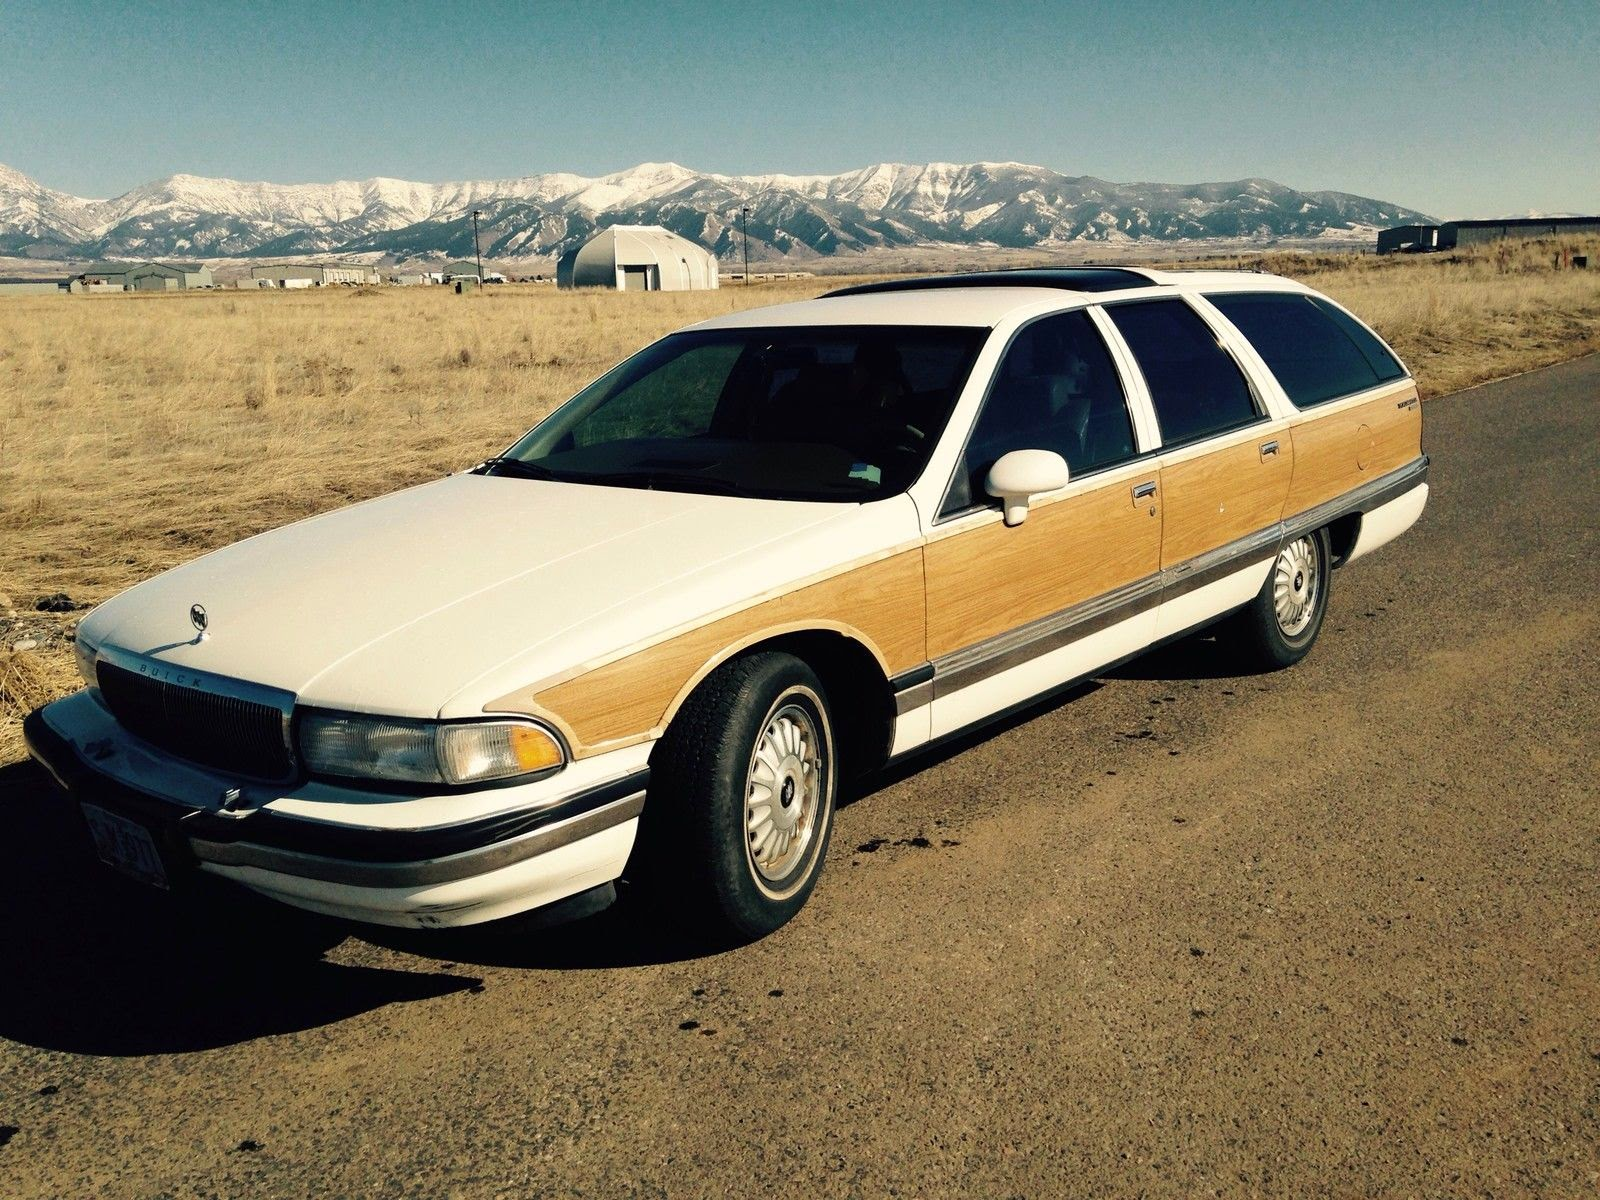 Daily Turismo 5k Seller Submission 1992 Buick Roadmaster Estate Wagon 94 96 The 4000 Lb B Body Was Canceled In 1996 At Time It Last Full Sized Station And Rear Drive Automobile From